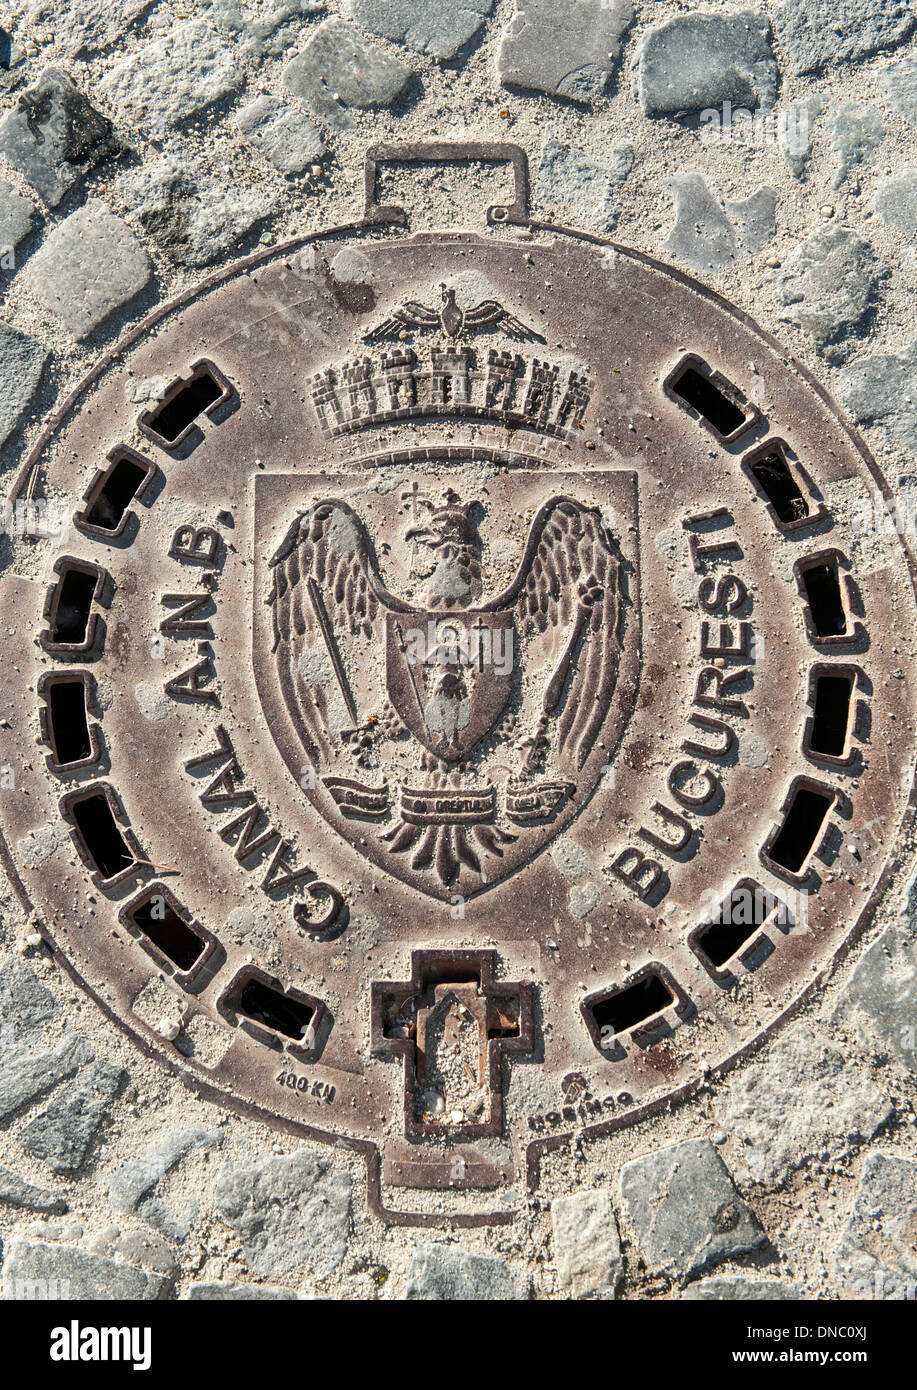 Manhole cover in Bucharest, the capital of Romania. It is inscribed with the coat of arms of the city. - Stock Image